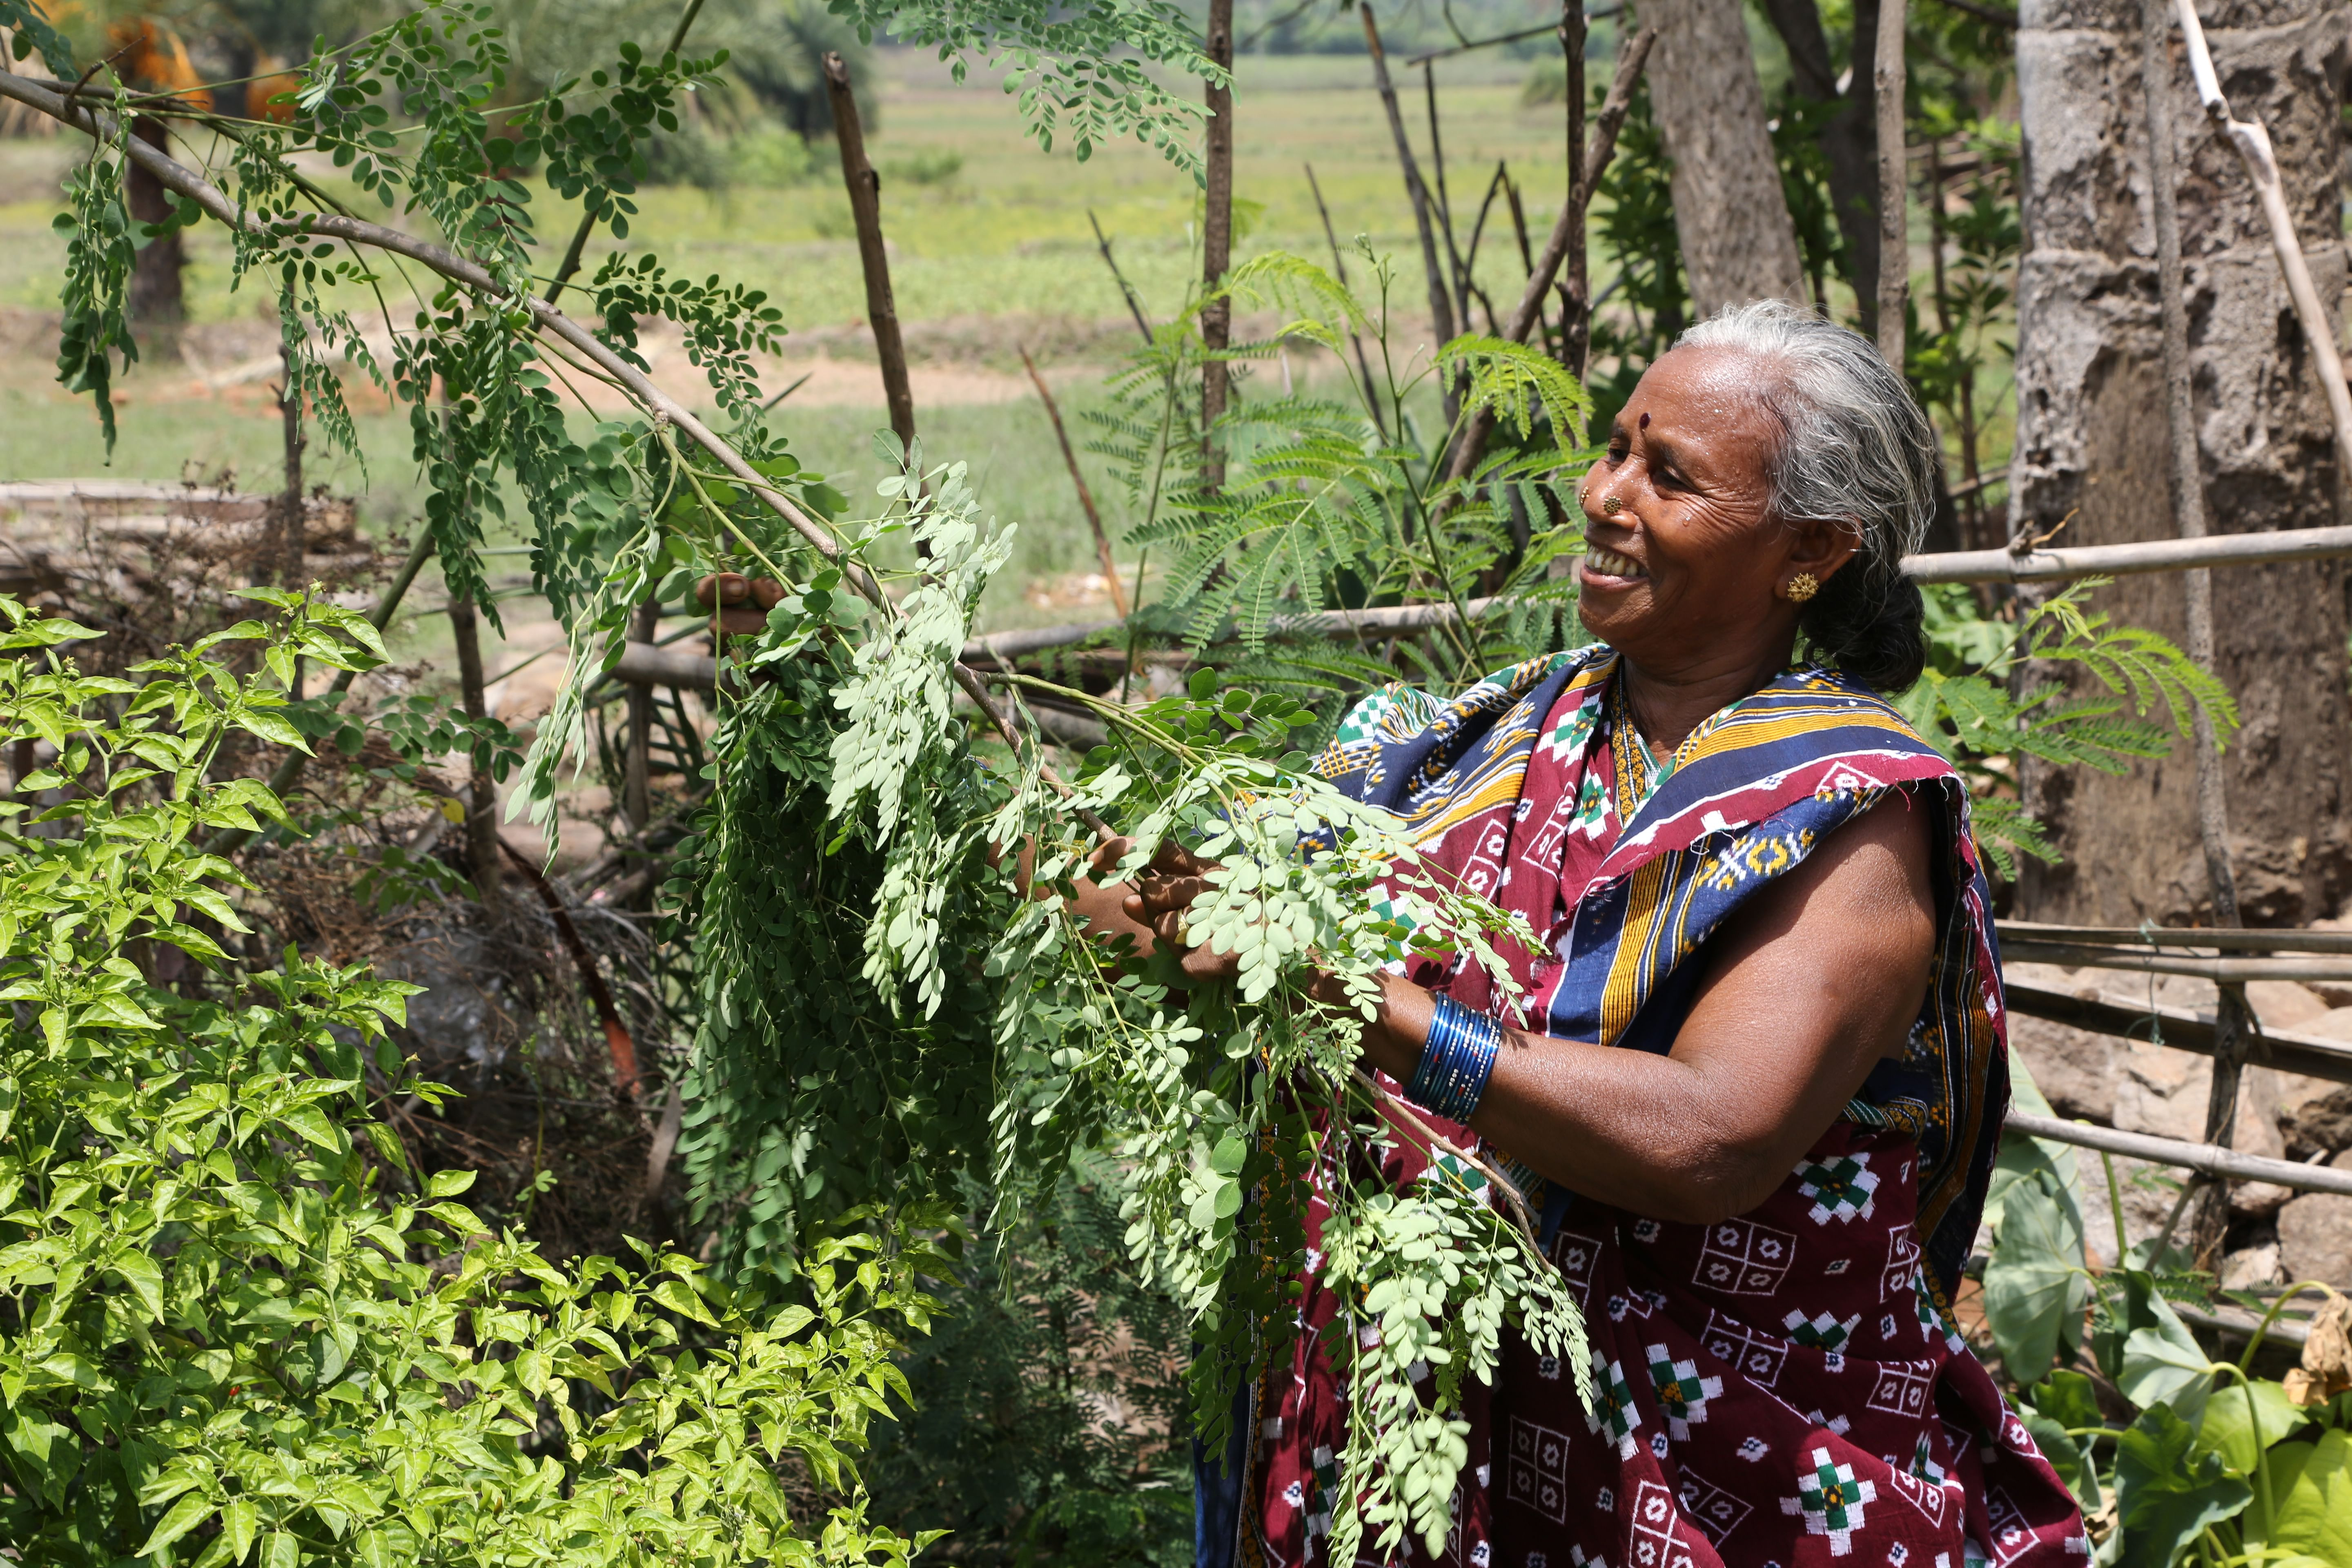 The rural women's movement for political and economic identity as farmers and their right to land has played a significant role in dismantling structures of power and gender-based exclusion from ownership of land and its management.